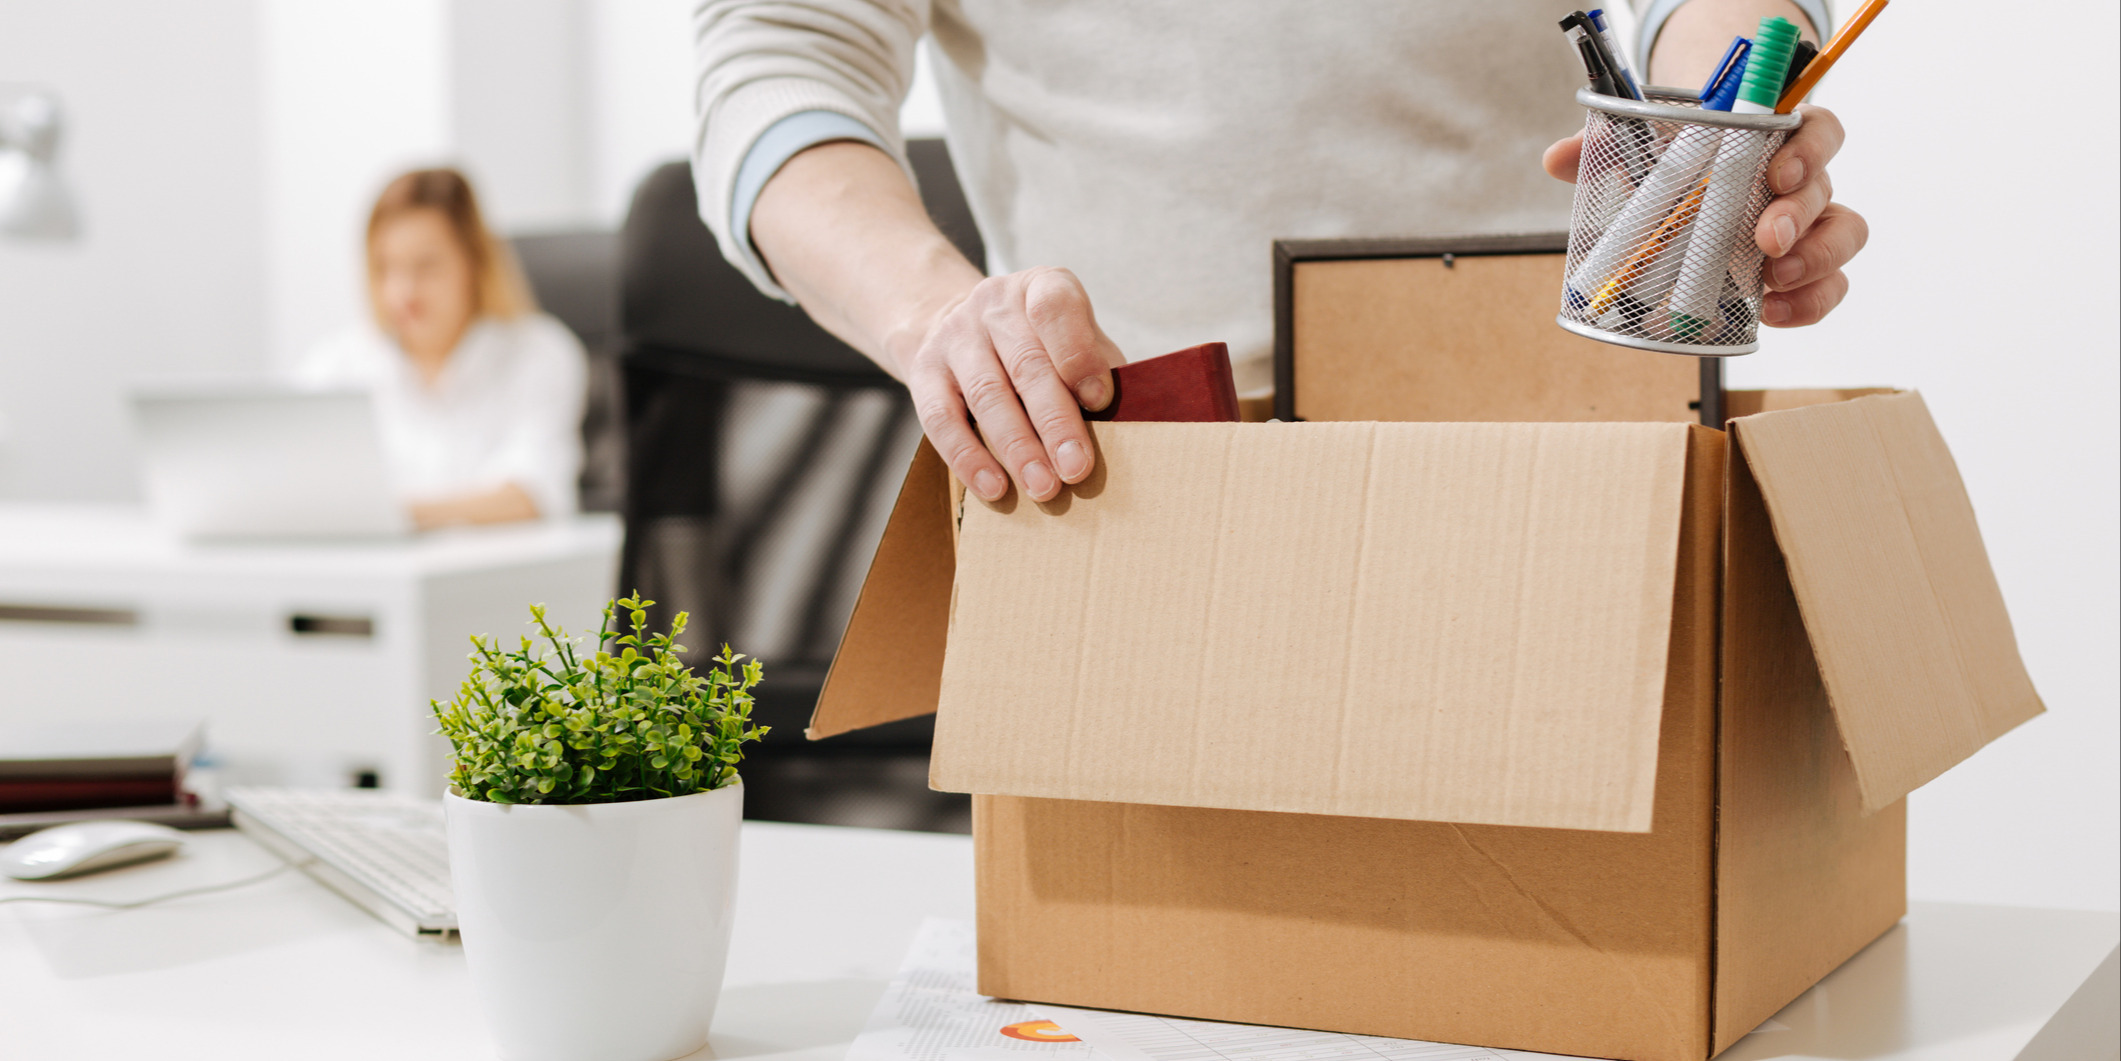 5 Reasons for High Turnover Rates and Tips for Prevention